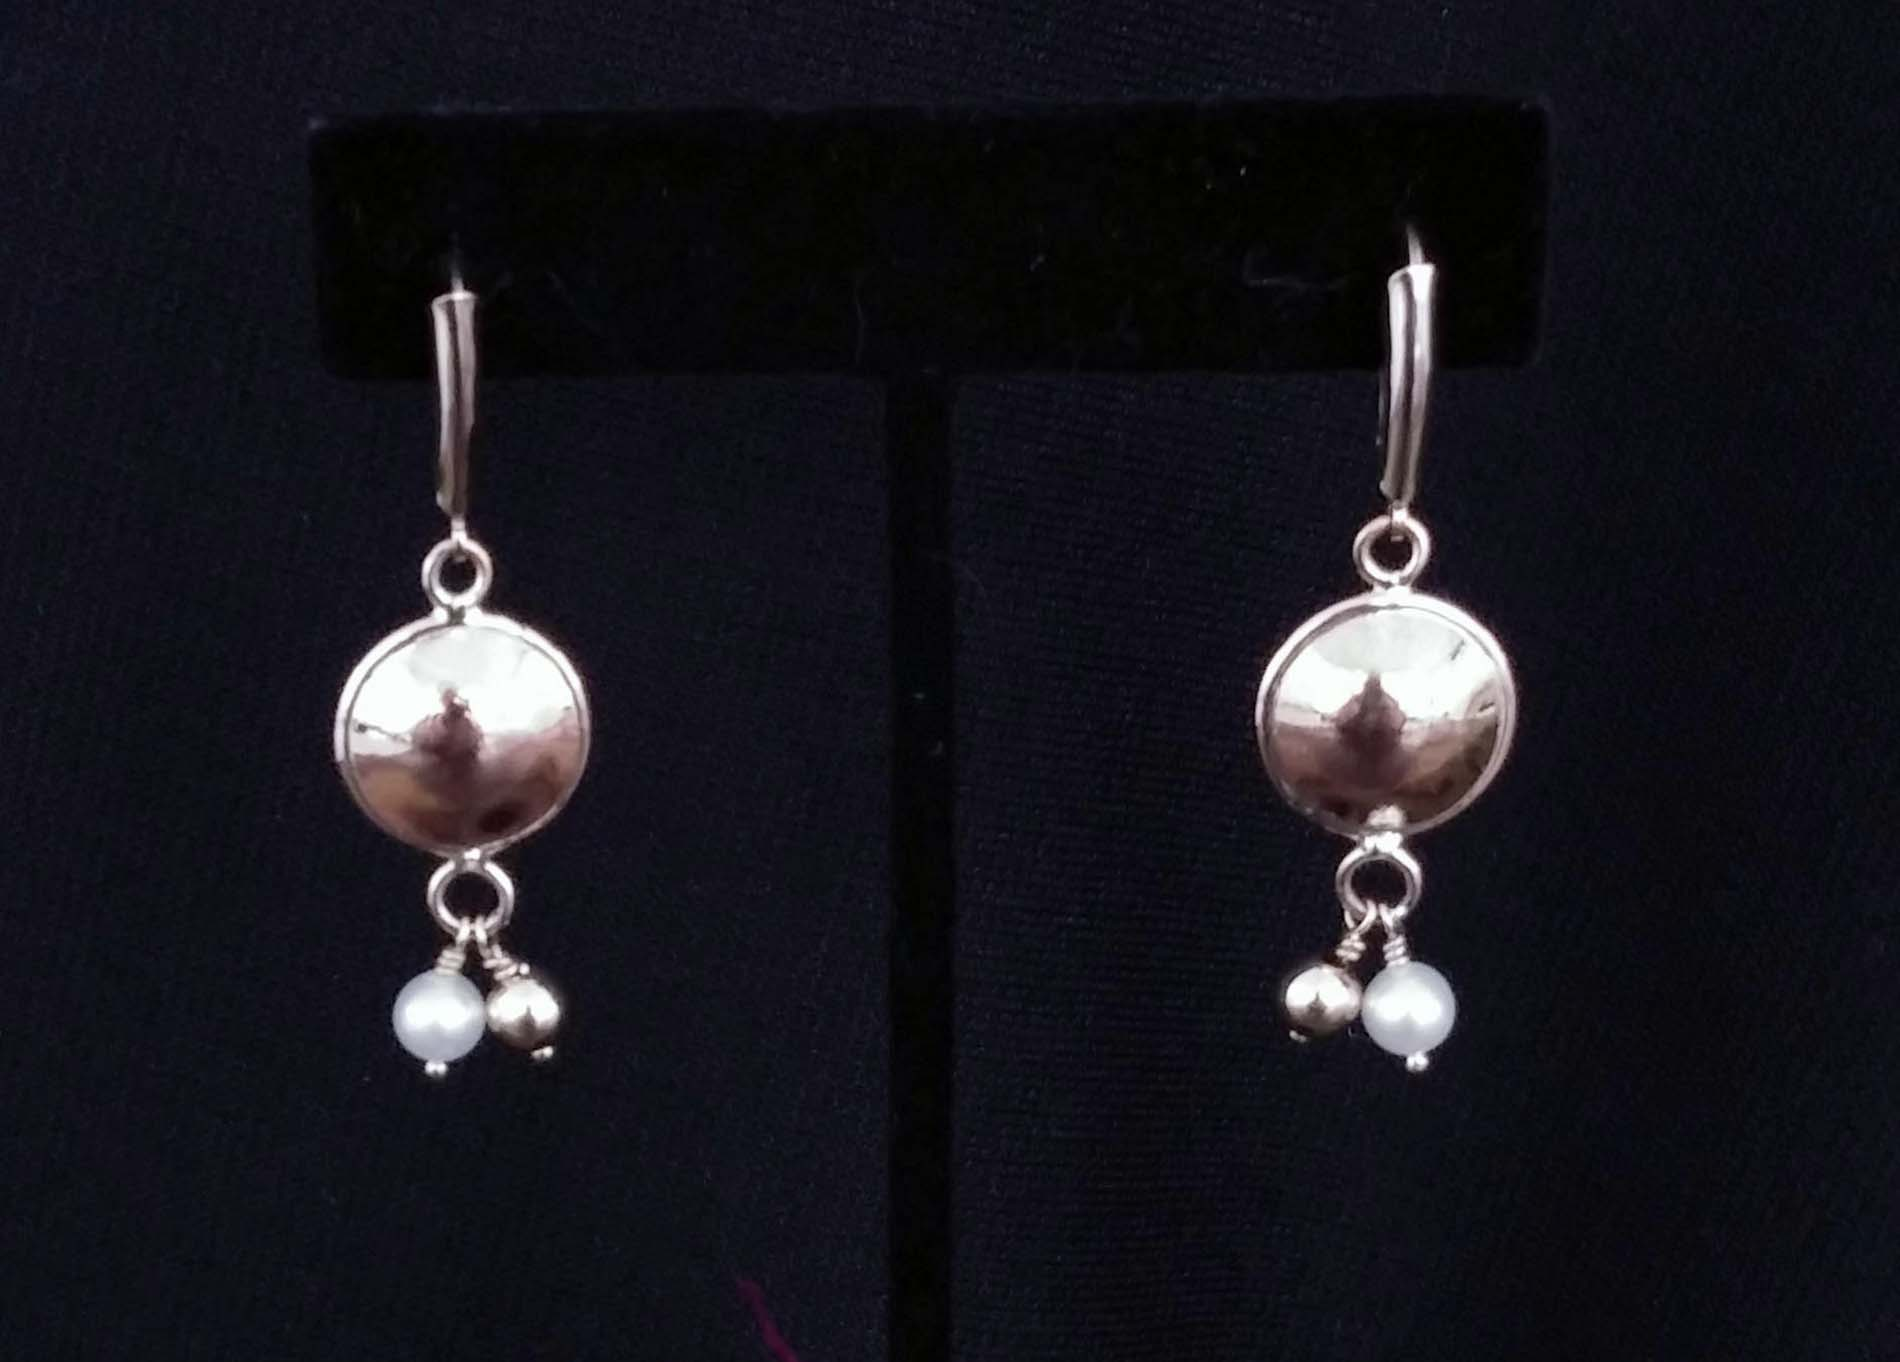 Silver Domed Earrings with Hanging Beads